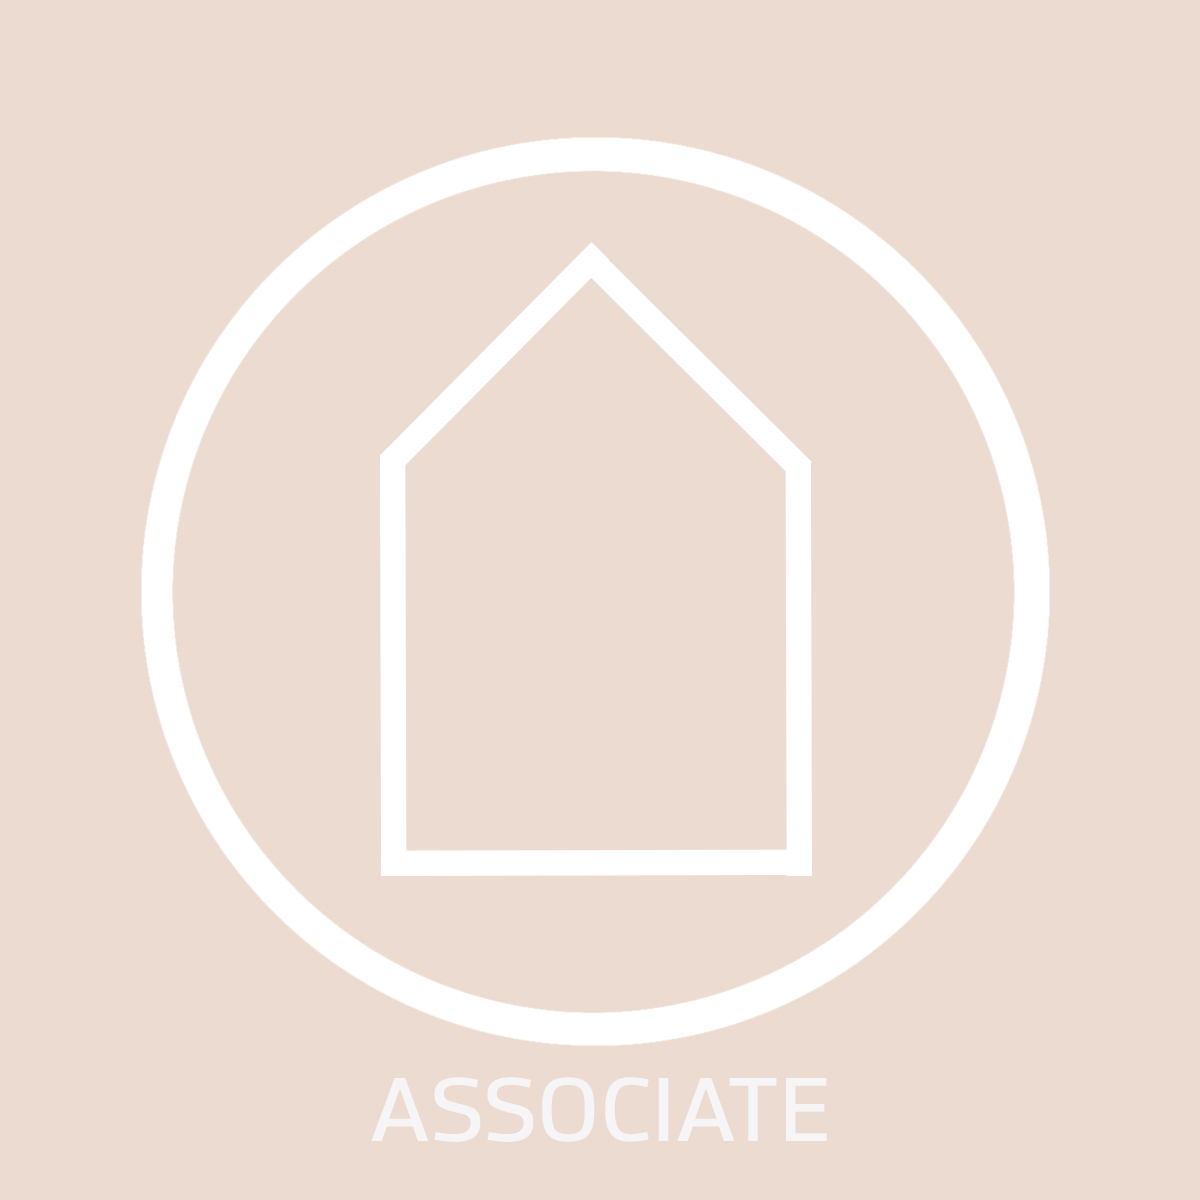 White Guildhouse logo with a pink background, with the text 'associate' below